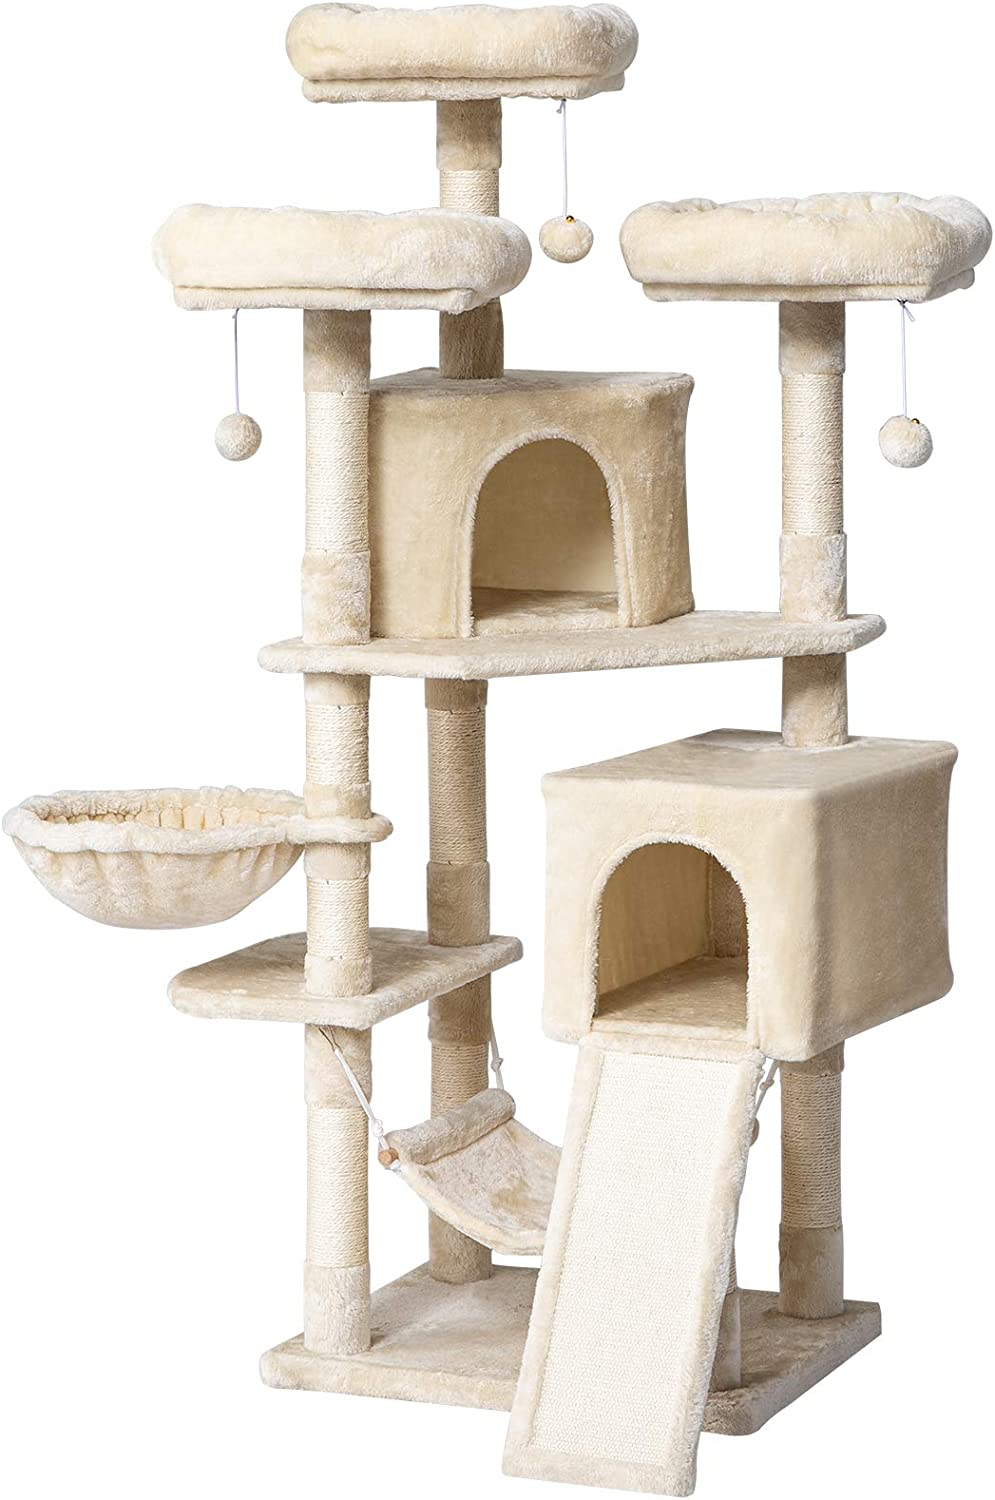 IBUYKE 63 inches Multi-Level Cat Tree Tower for Large Cats Play Furniture Cat Condo with Sisal Scratching Posts&Board, Platforms, Hammock Basket, Dangling Balls, Smoke Gray UCT021G : Pet Supplies